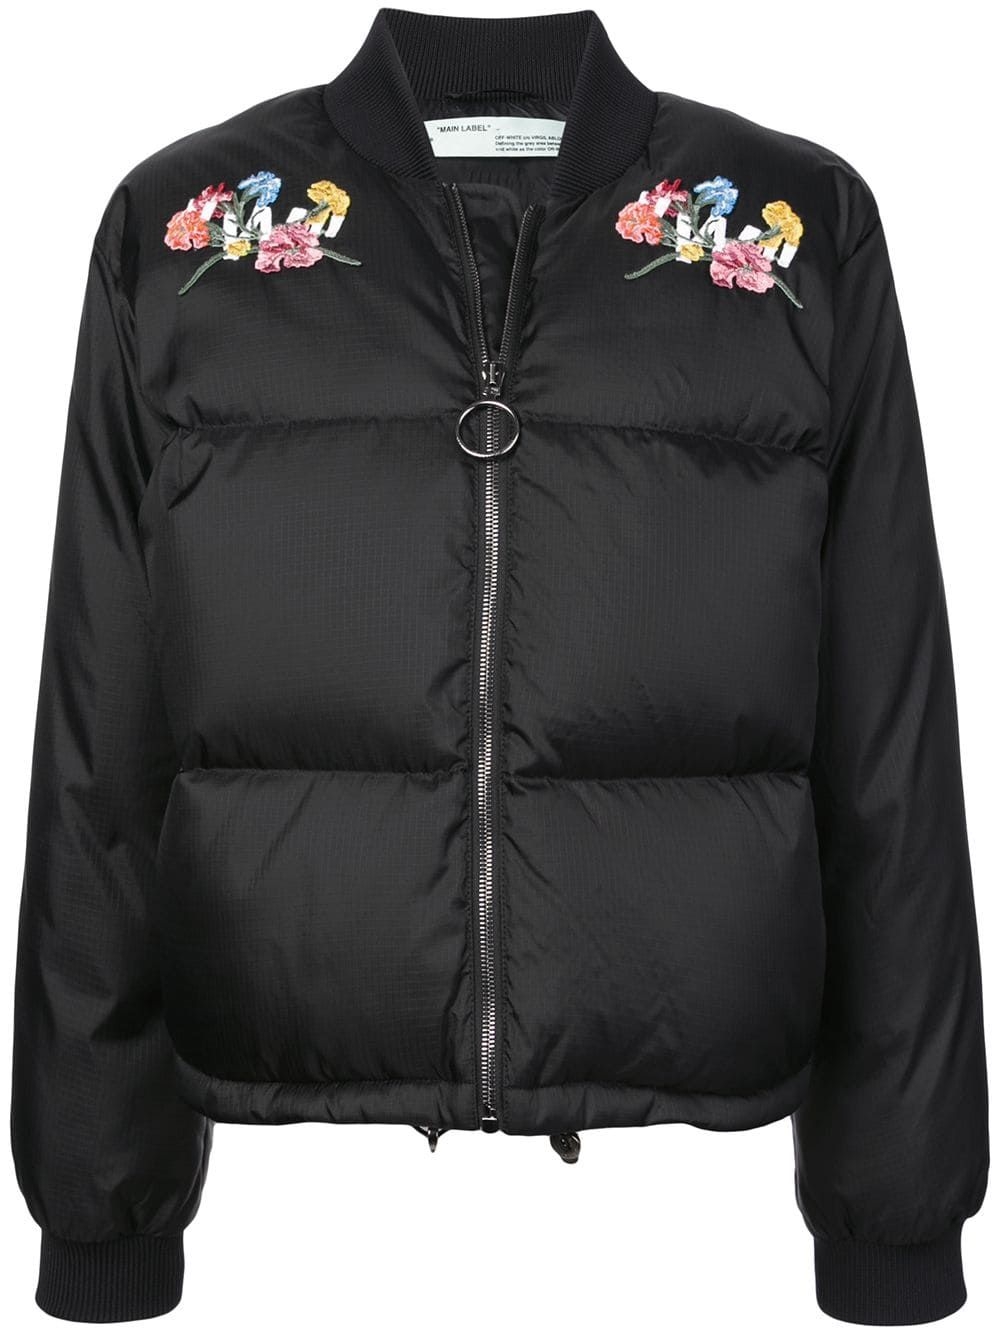 Off White Embroidered Puffer Jacket Black Embroidered Bomber